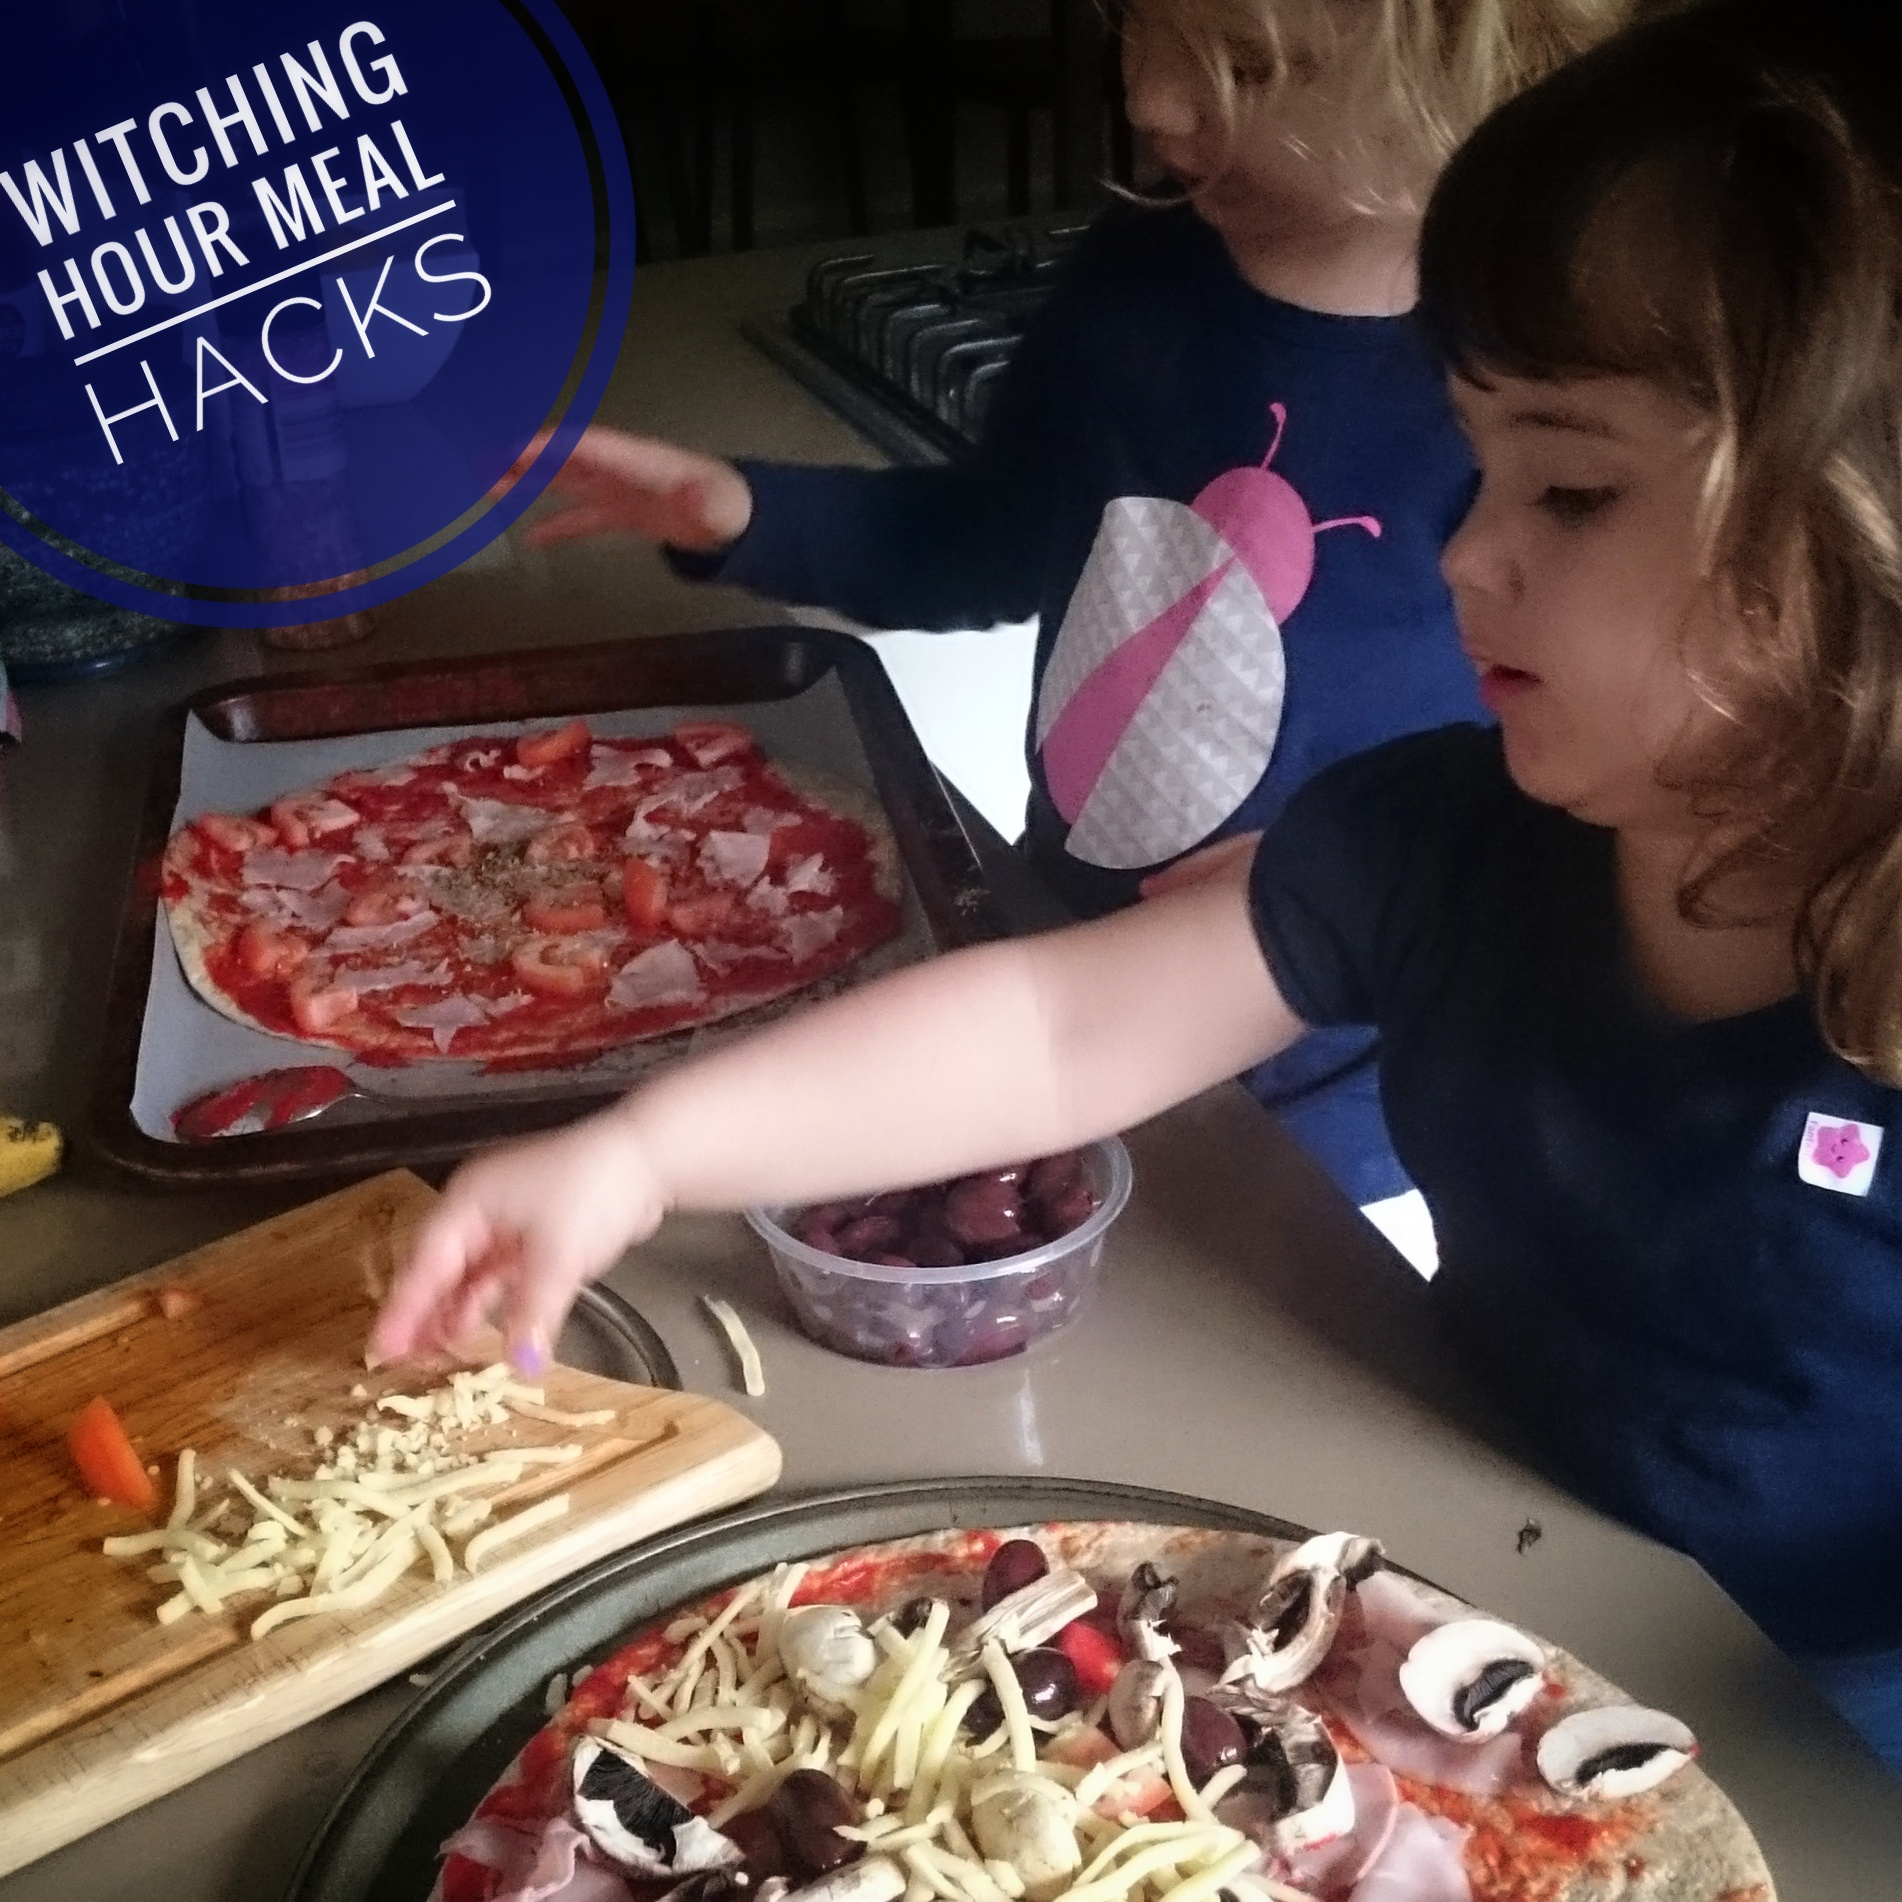 Witching Hour Meal Hacks